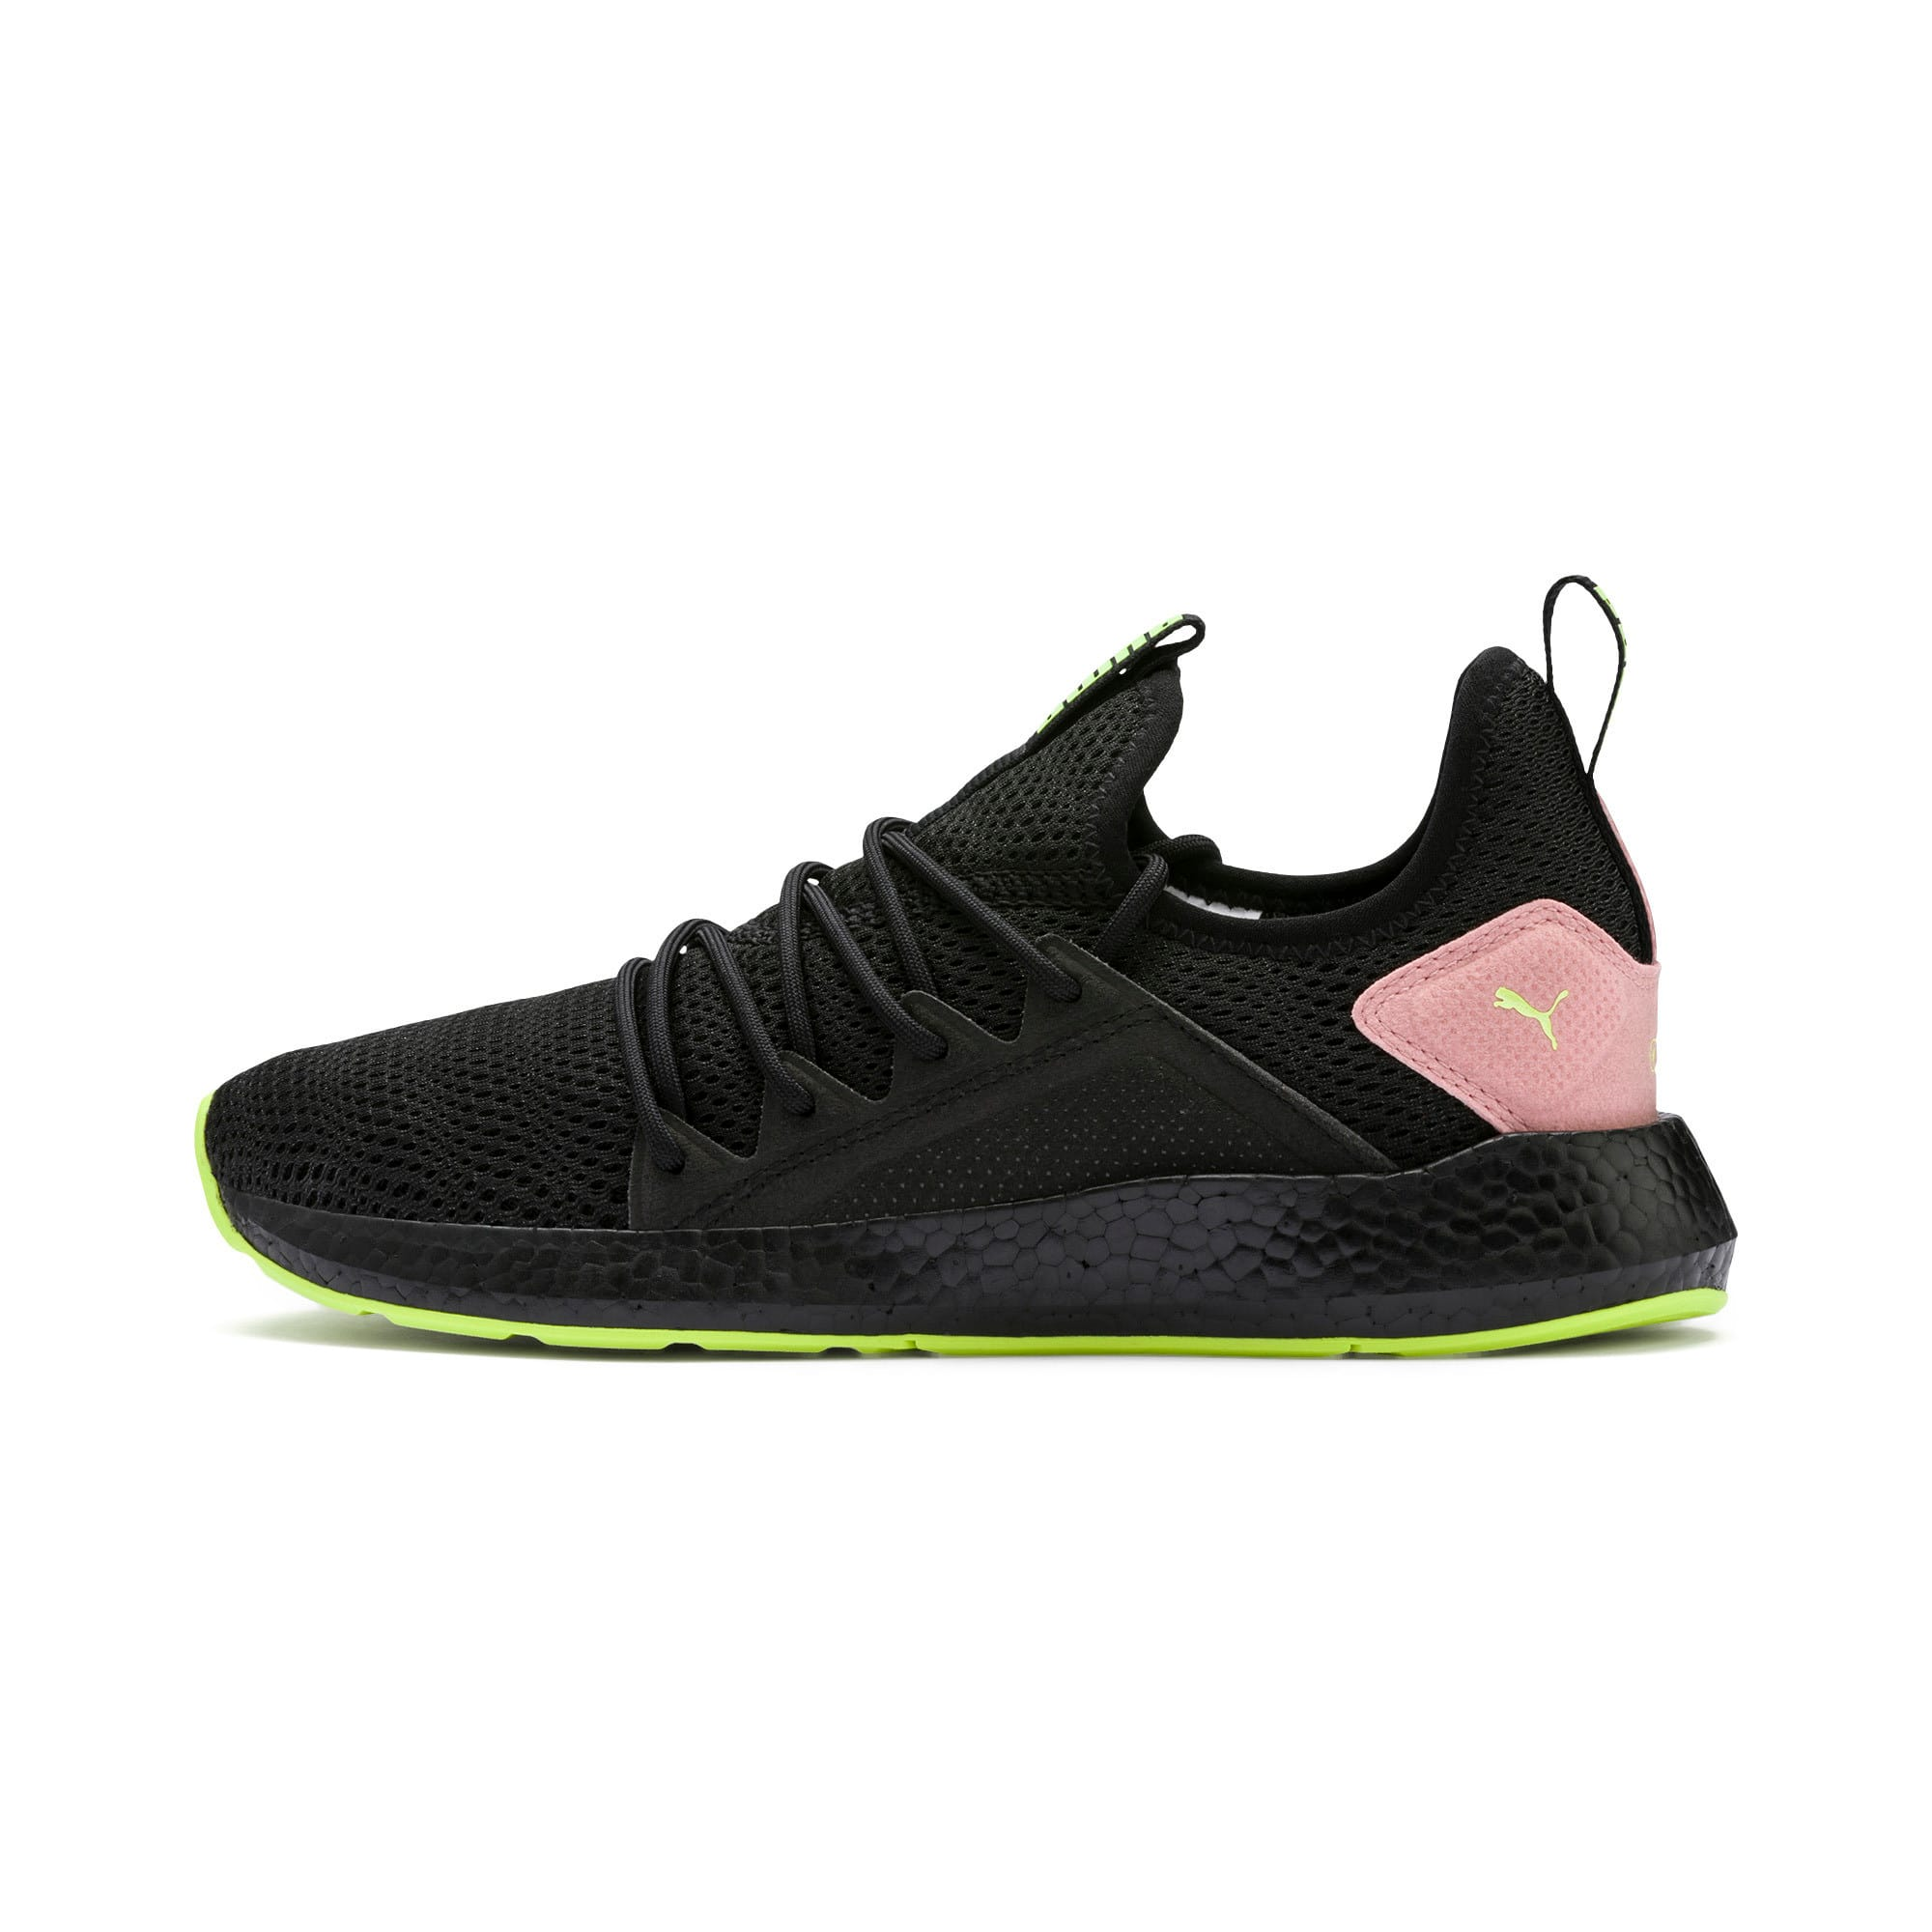 Thumbnail 1 of NRGY Neko Shift Women's Running Shoes, Puma Black-Bridal Rose, medium